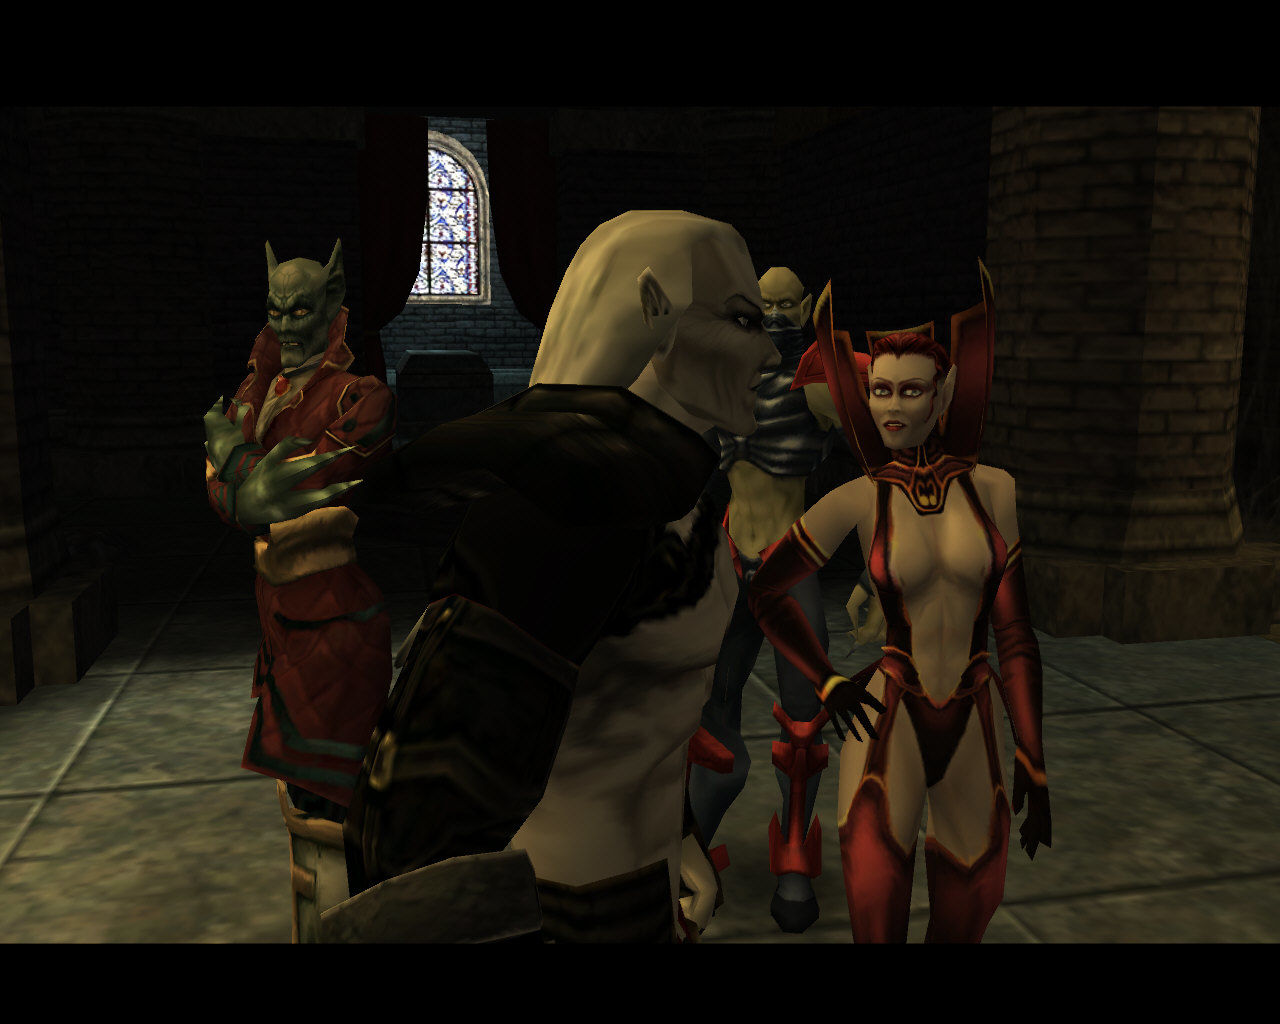 The Legacy of Kain Series: Blood Omen 2 Windows Kain fails to notice the subtle nipple slips from her fellow vampire.